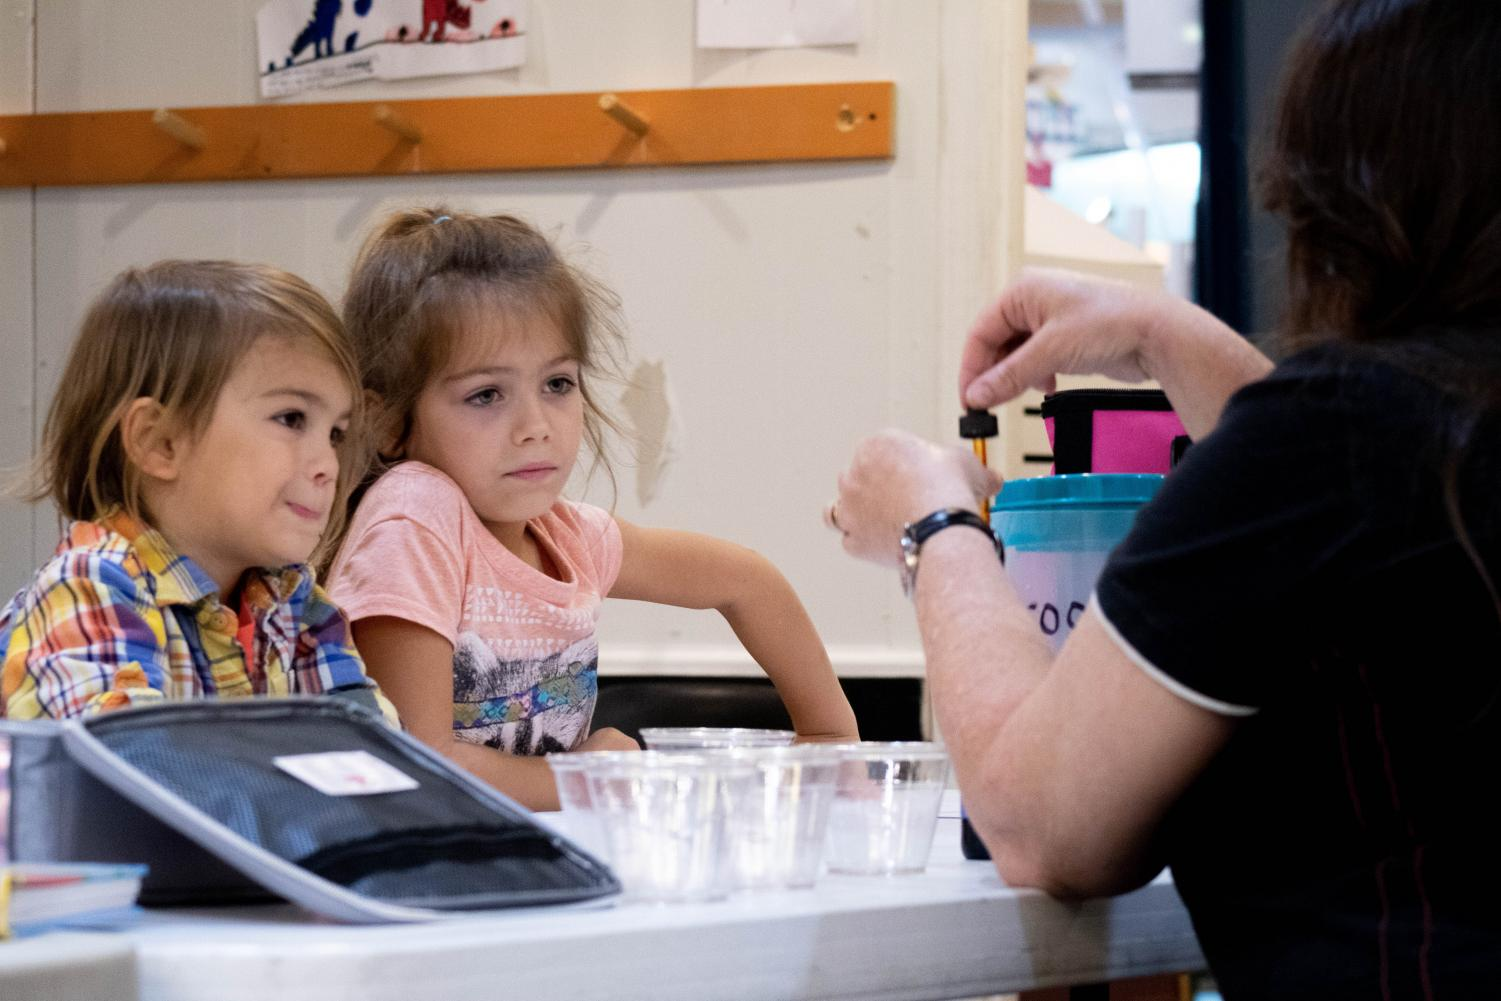 Graham, age 4, and Audry, age 7, learning about the properties of water at The Science Center's new home school camp on Friday September, 27, 2019.